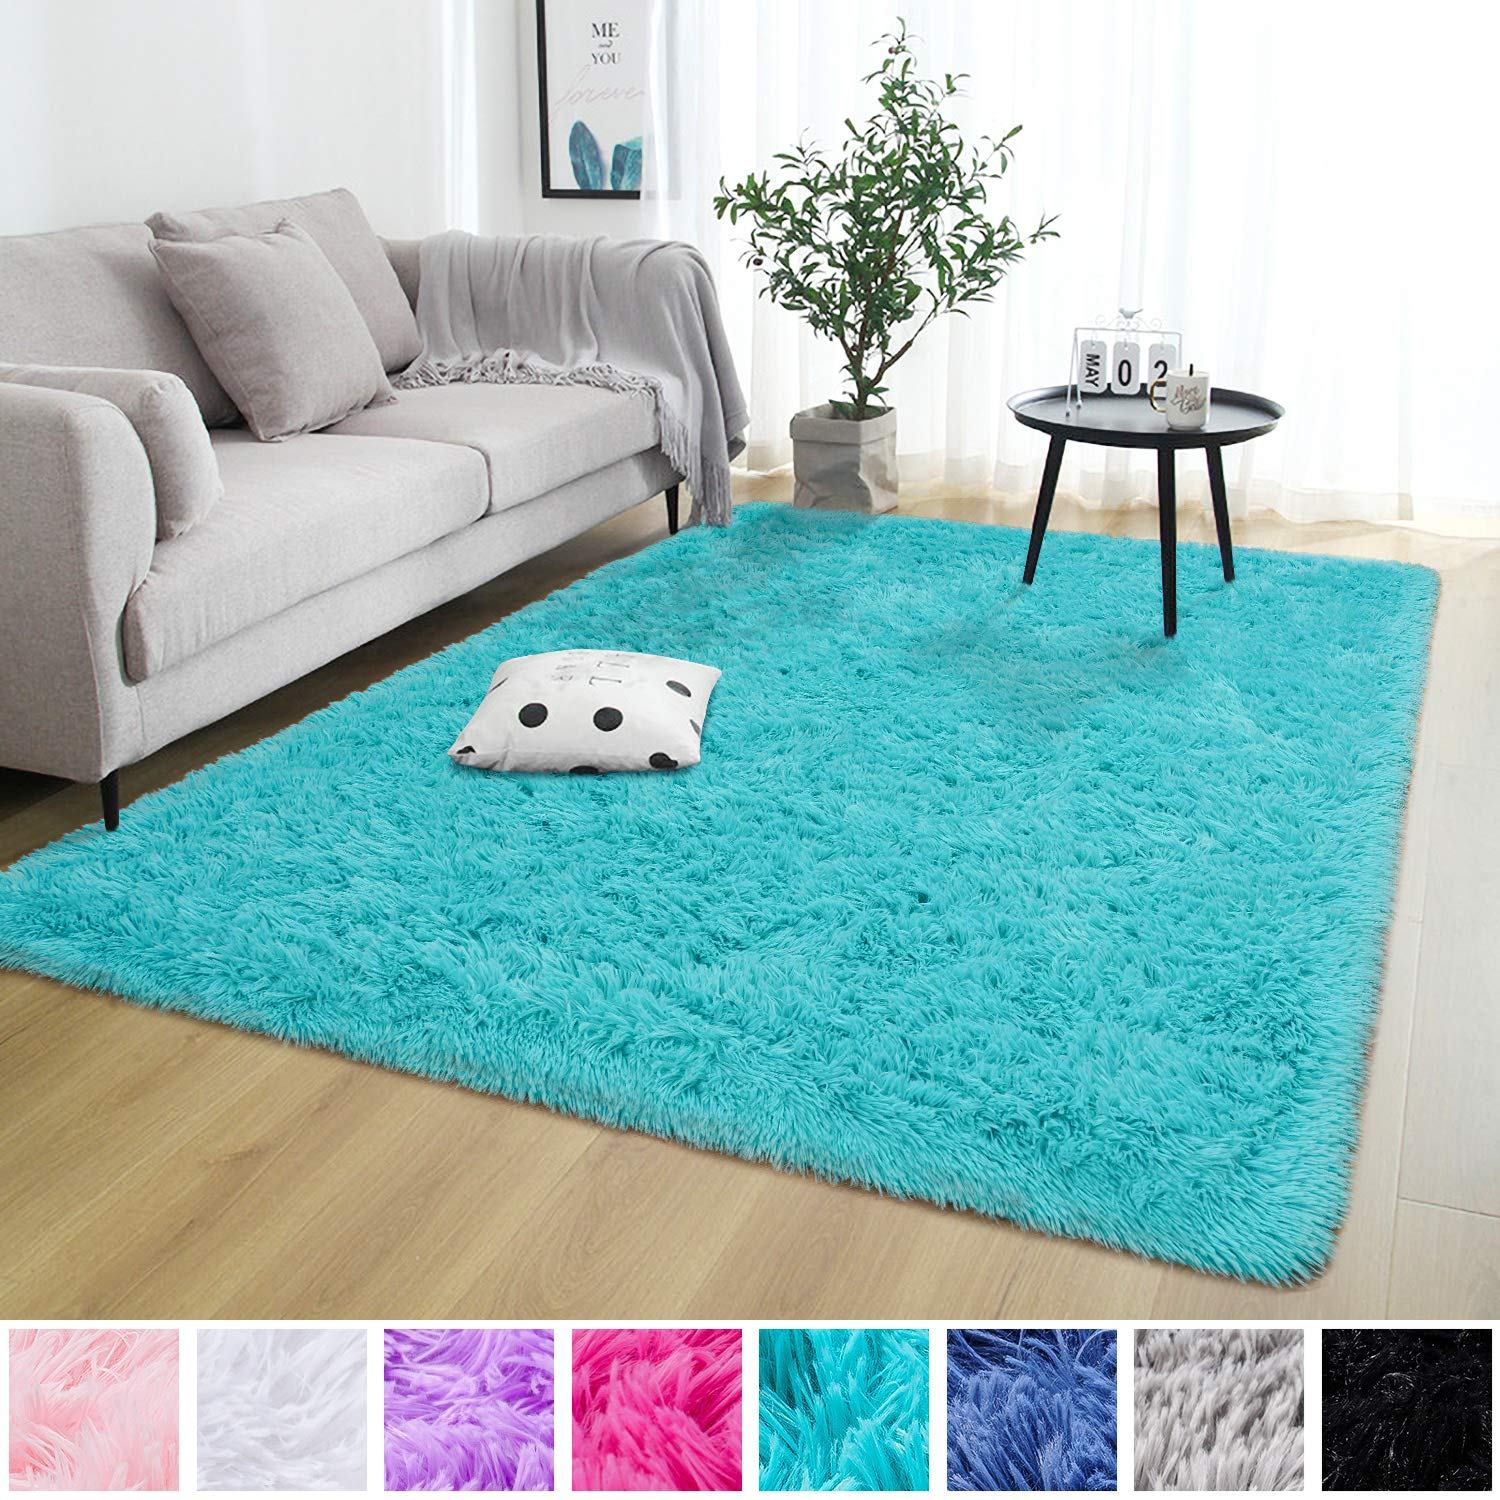 Super Soft Fluffy Nursery Rug for Kids Teens Room Comfy